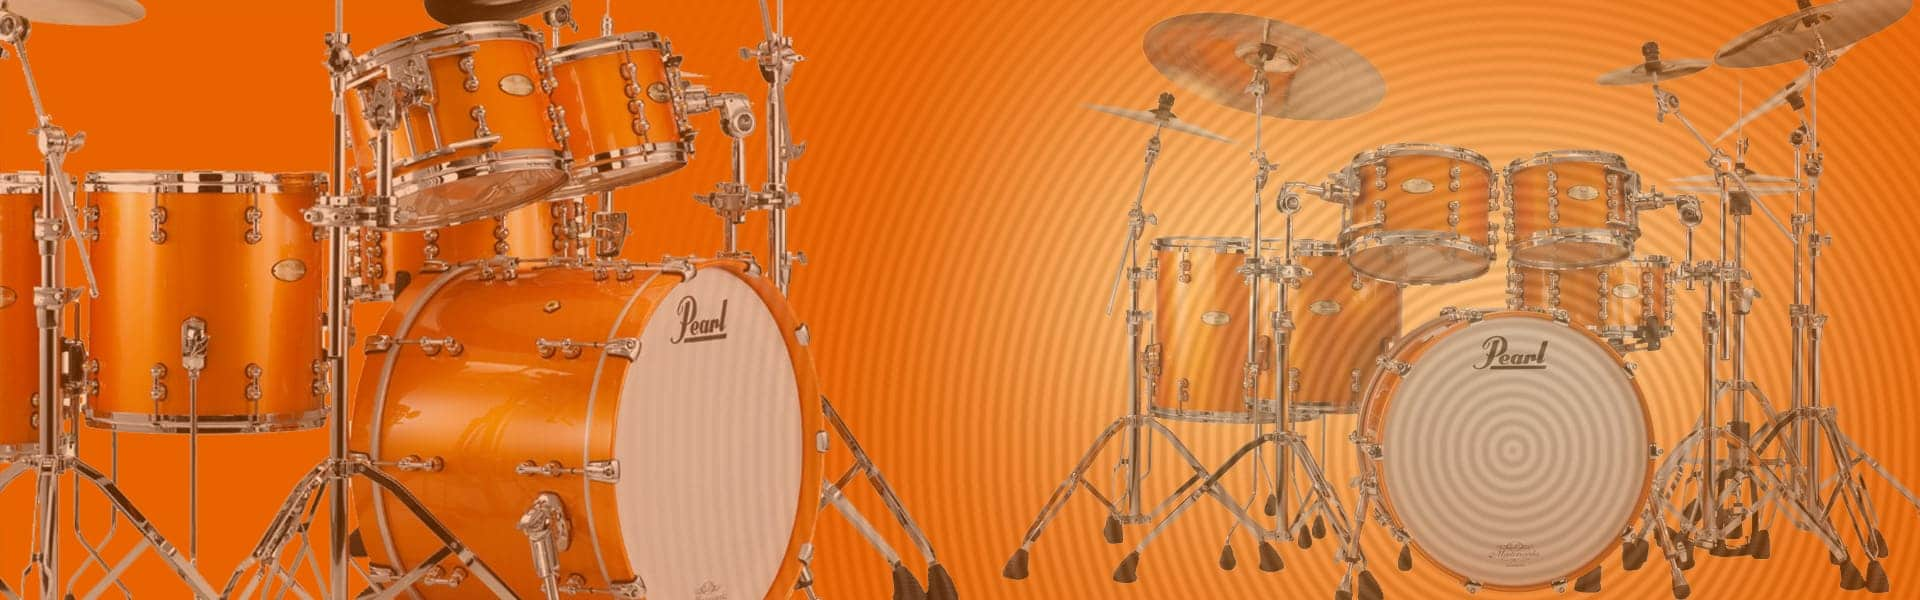 Pearl Drums | Web Design | E-commerce | Darkstar Digital